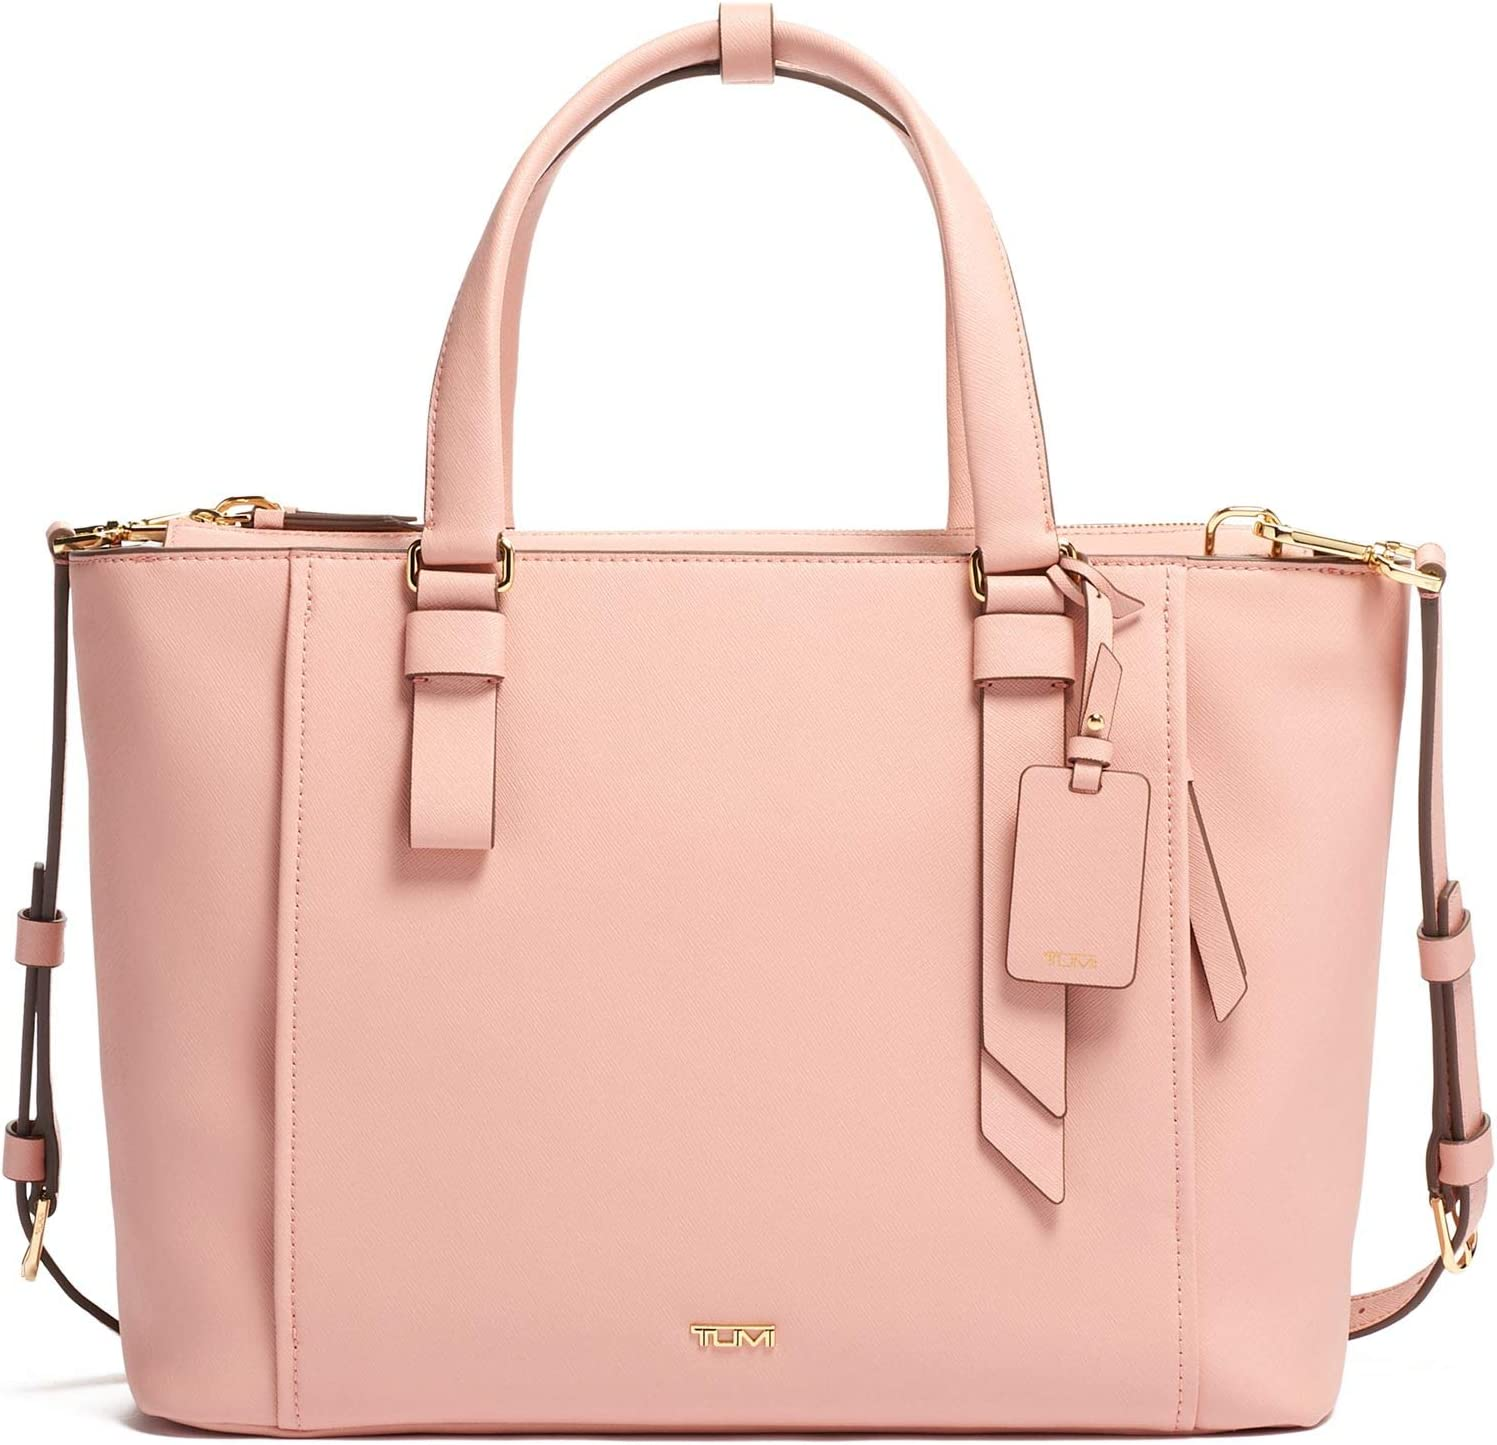 TUMI - Varek Park Leather Laptop Tote - 12 Inch Computer Bag for Men and Women - Blush